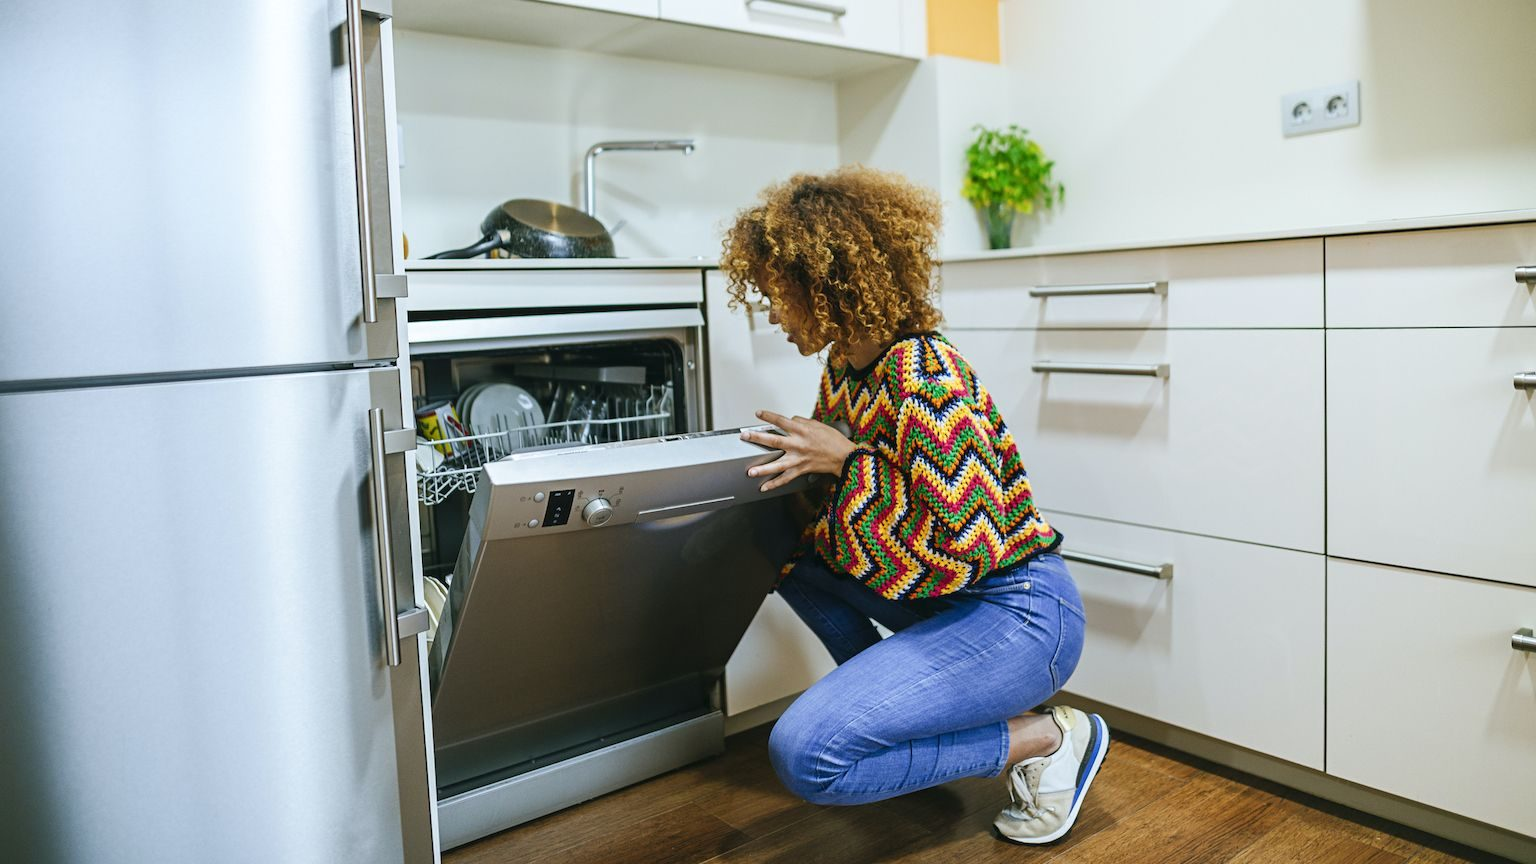 A young woman wearing a colourful sweater loading her dishwasher